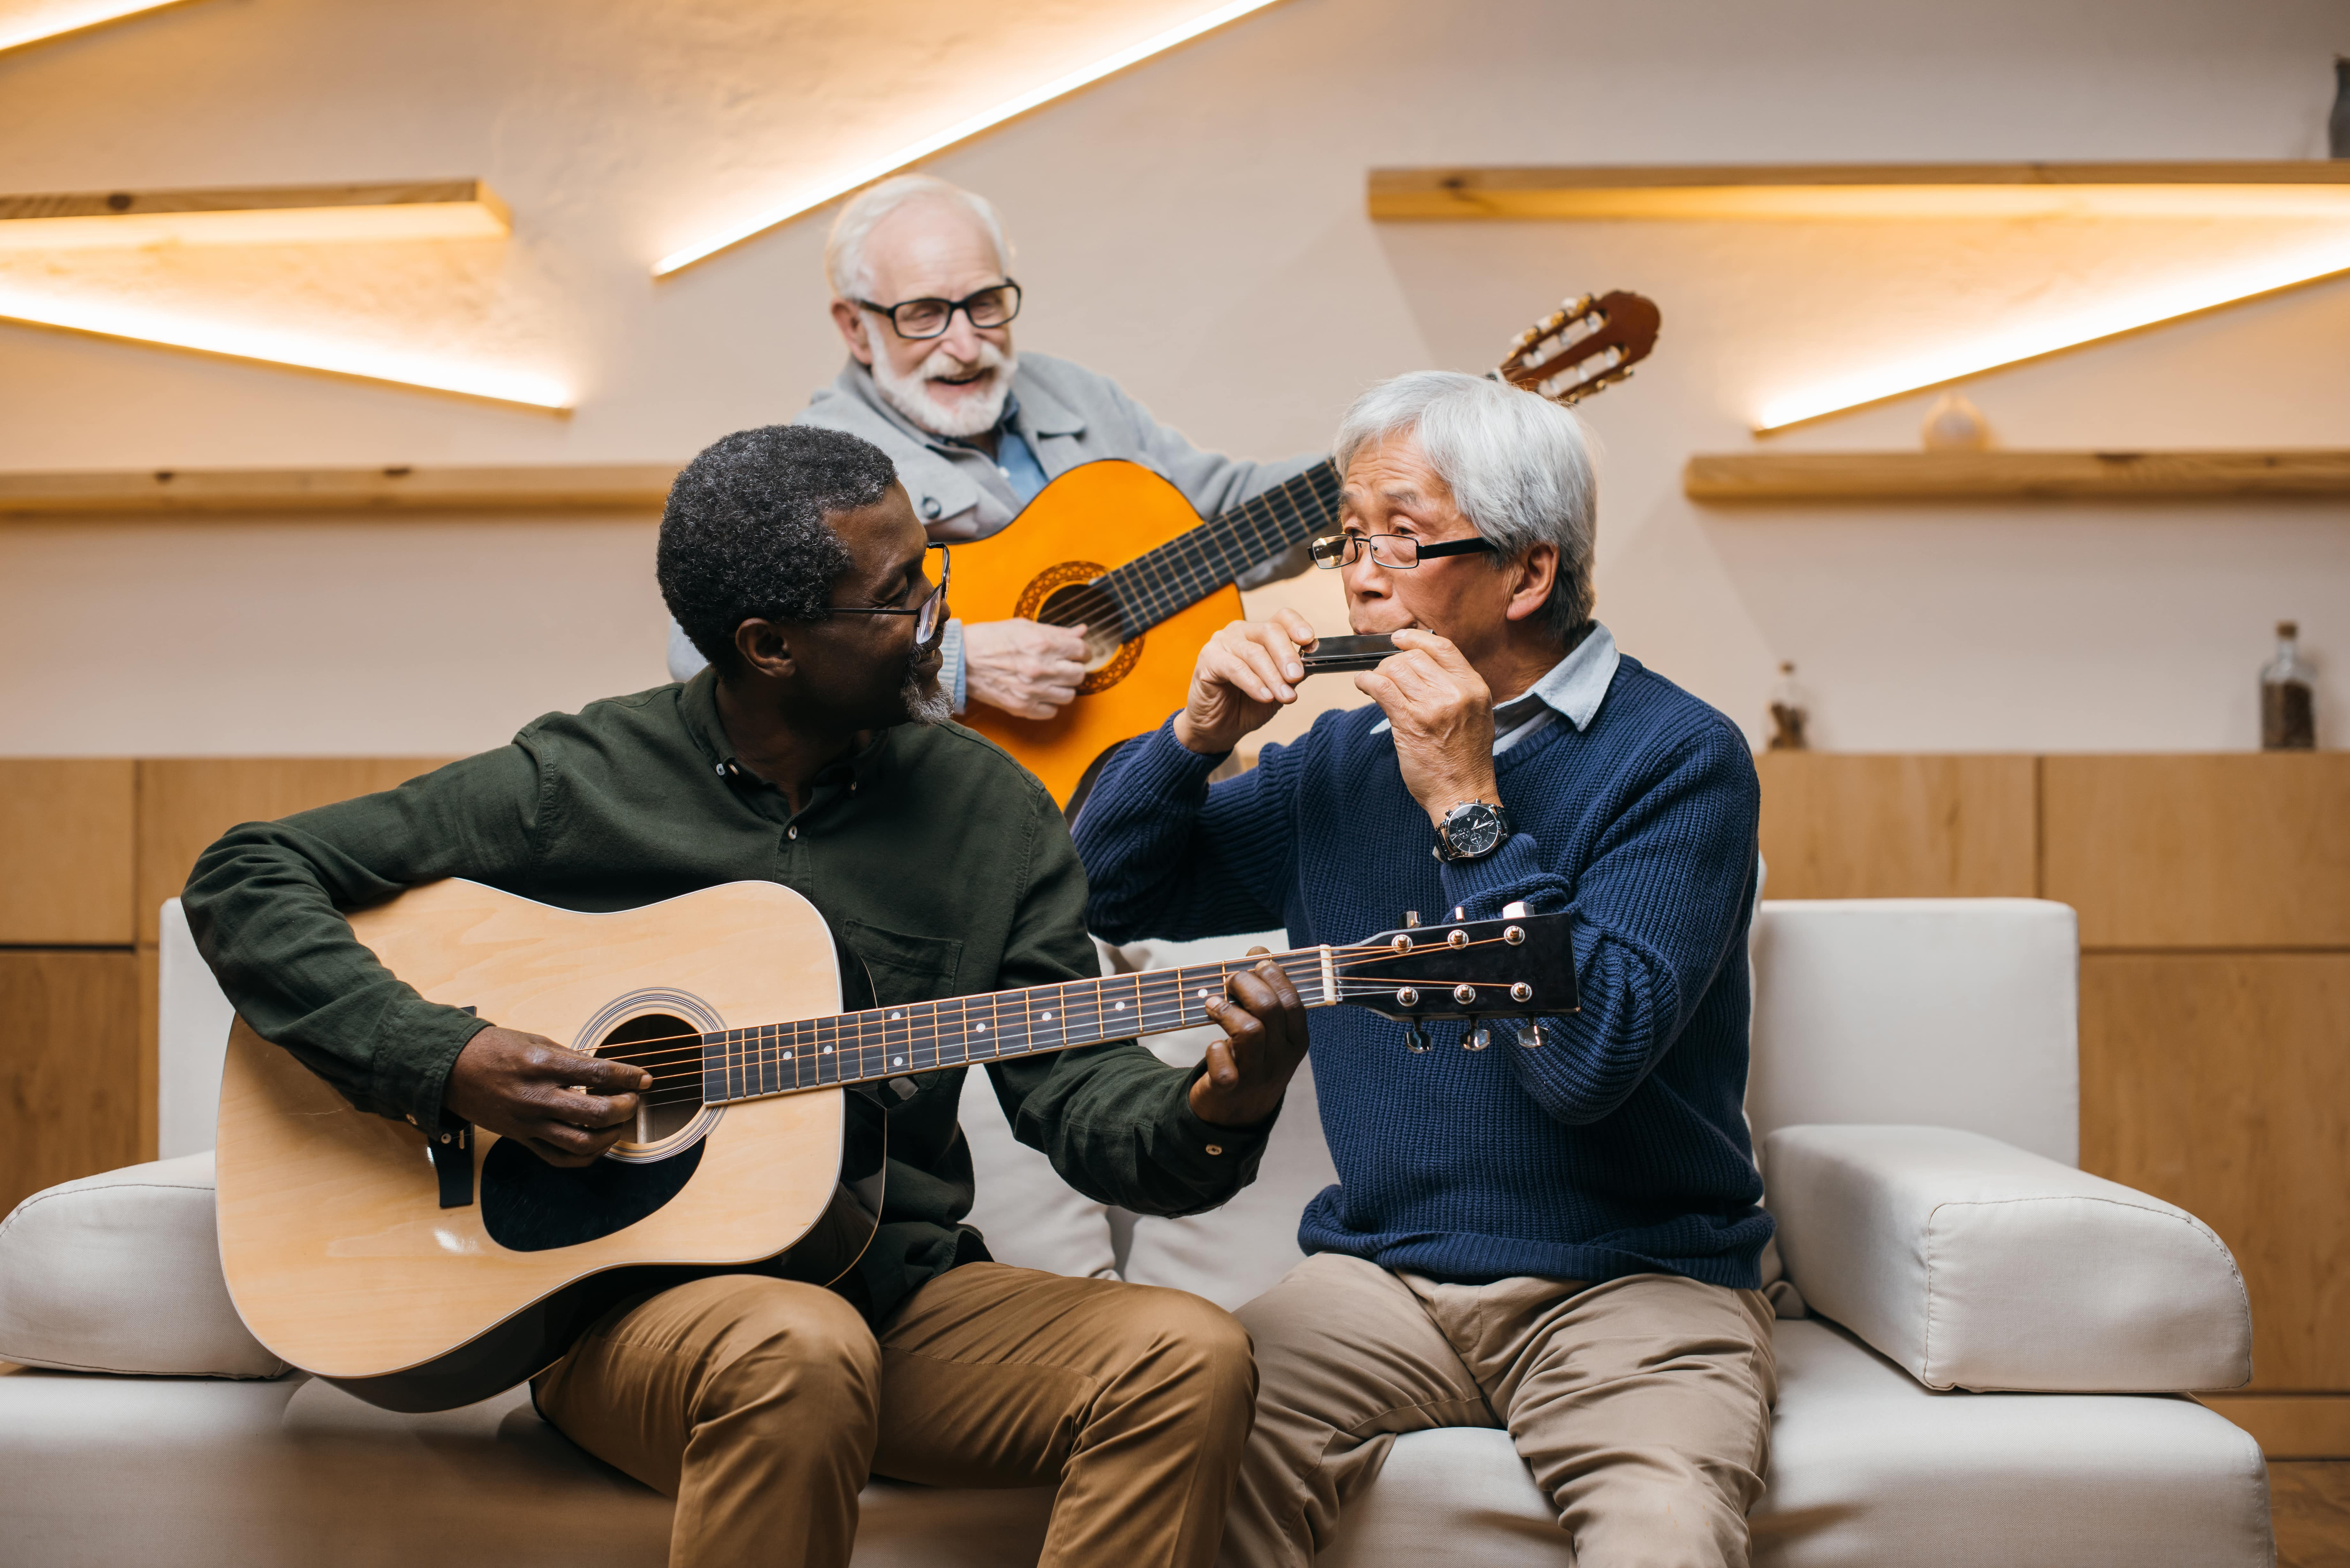 Ways to Enjoy Music in Your Assisted Living Apartment